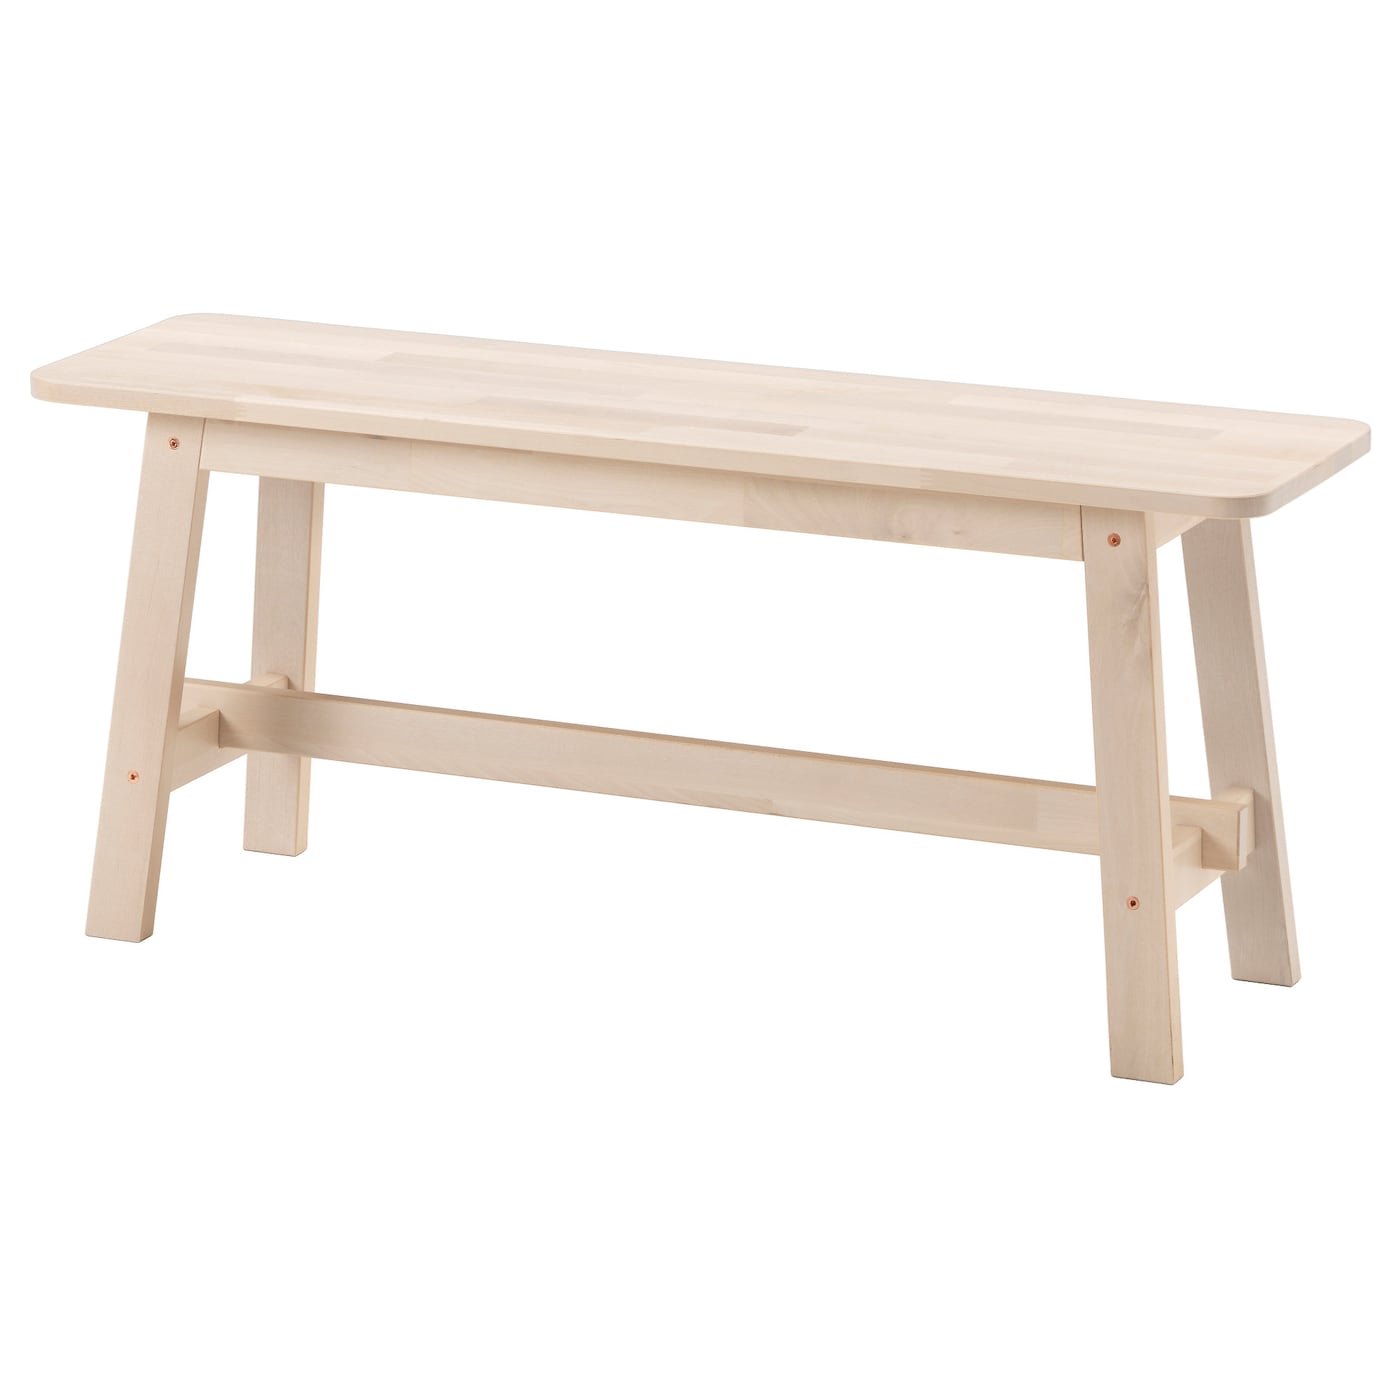 Norr Ker Table Blanc Bouleau 125×74 Cm Ikea # Banc De Table Blanc